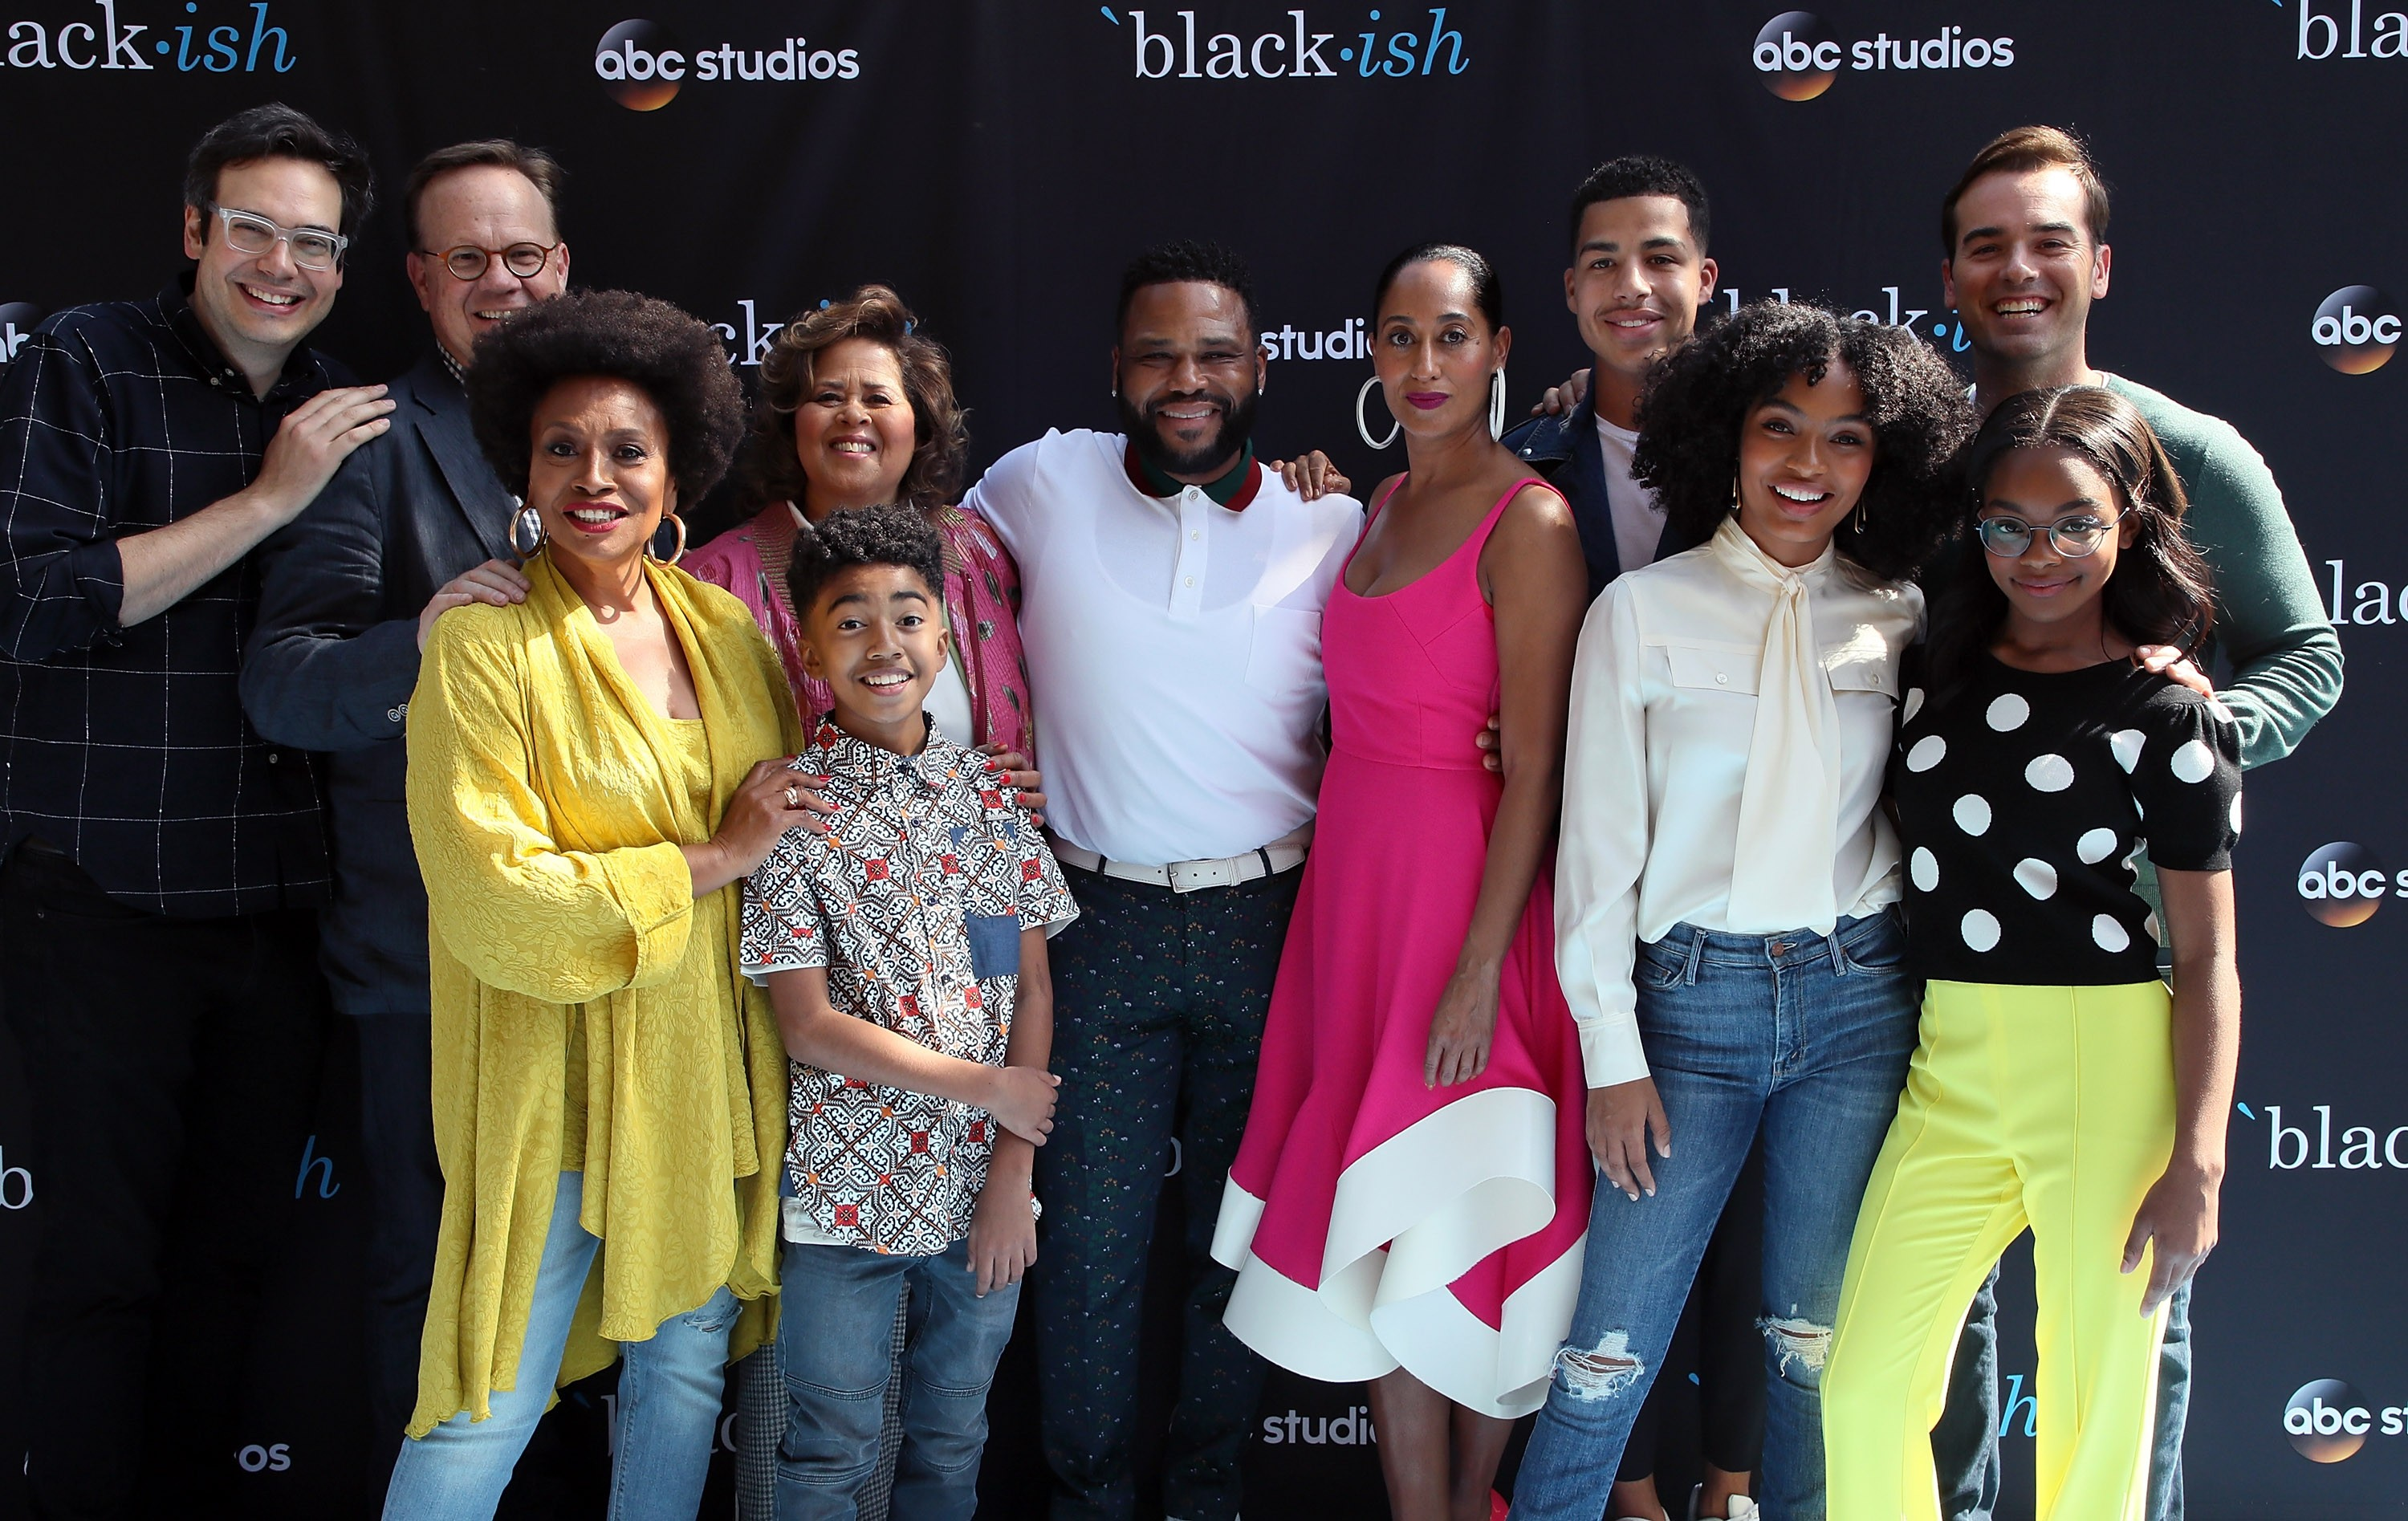 The cast of Girlfriends to reunite in an episode of black-ish: All you eed to know about